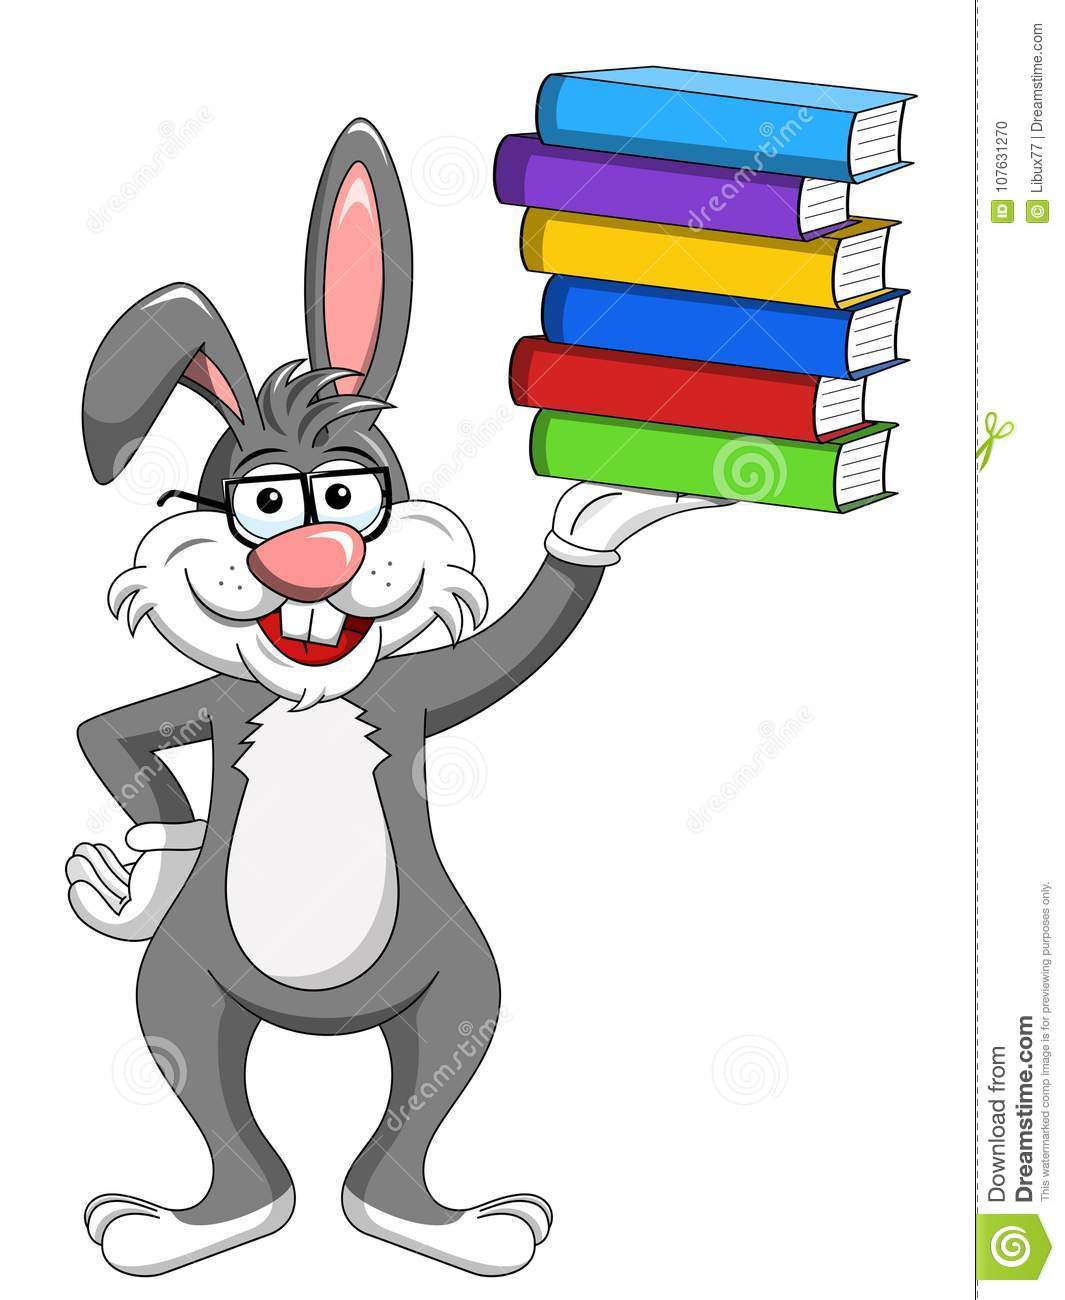 Bunny rabbit wearing glasses holding stack of books